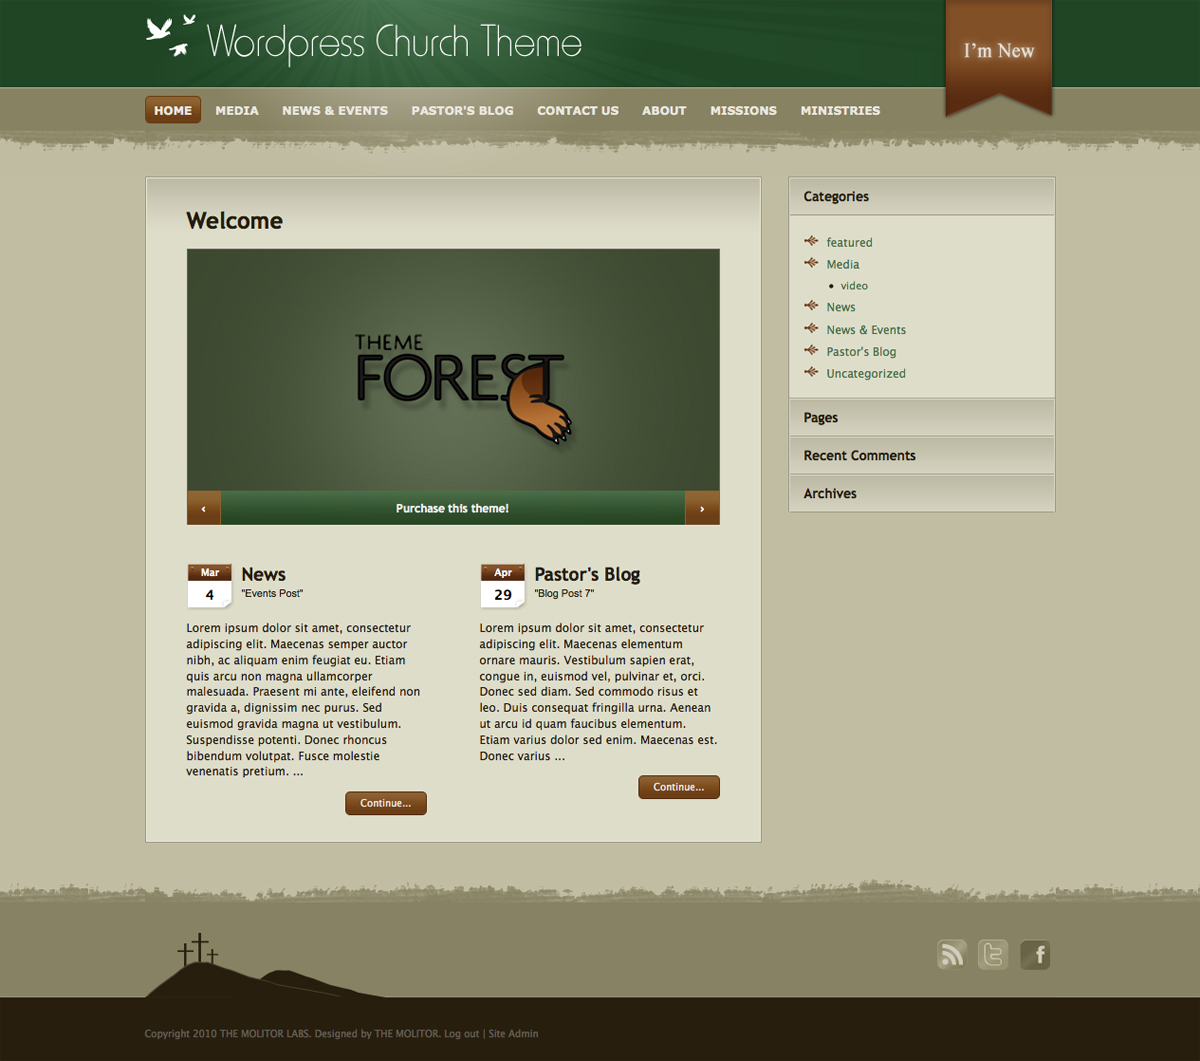 Wordpress Church